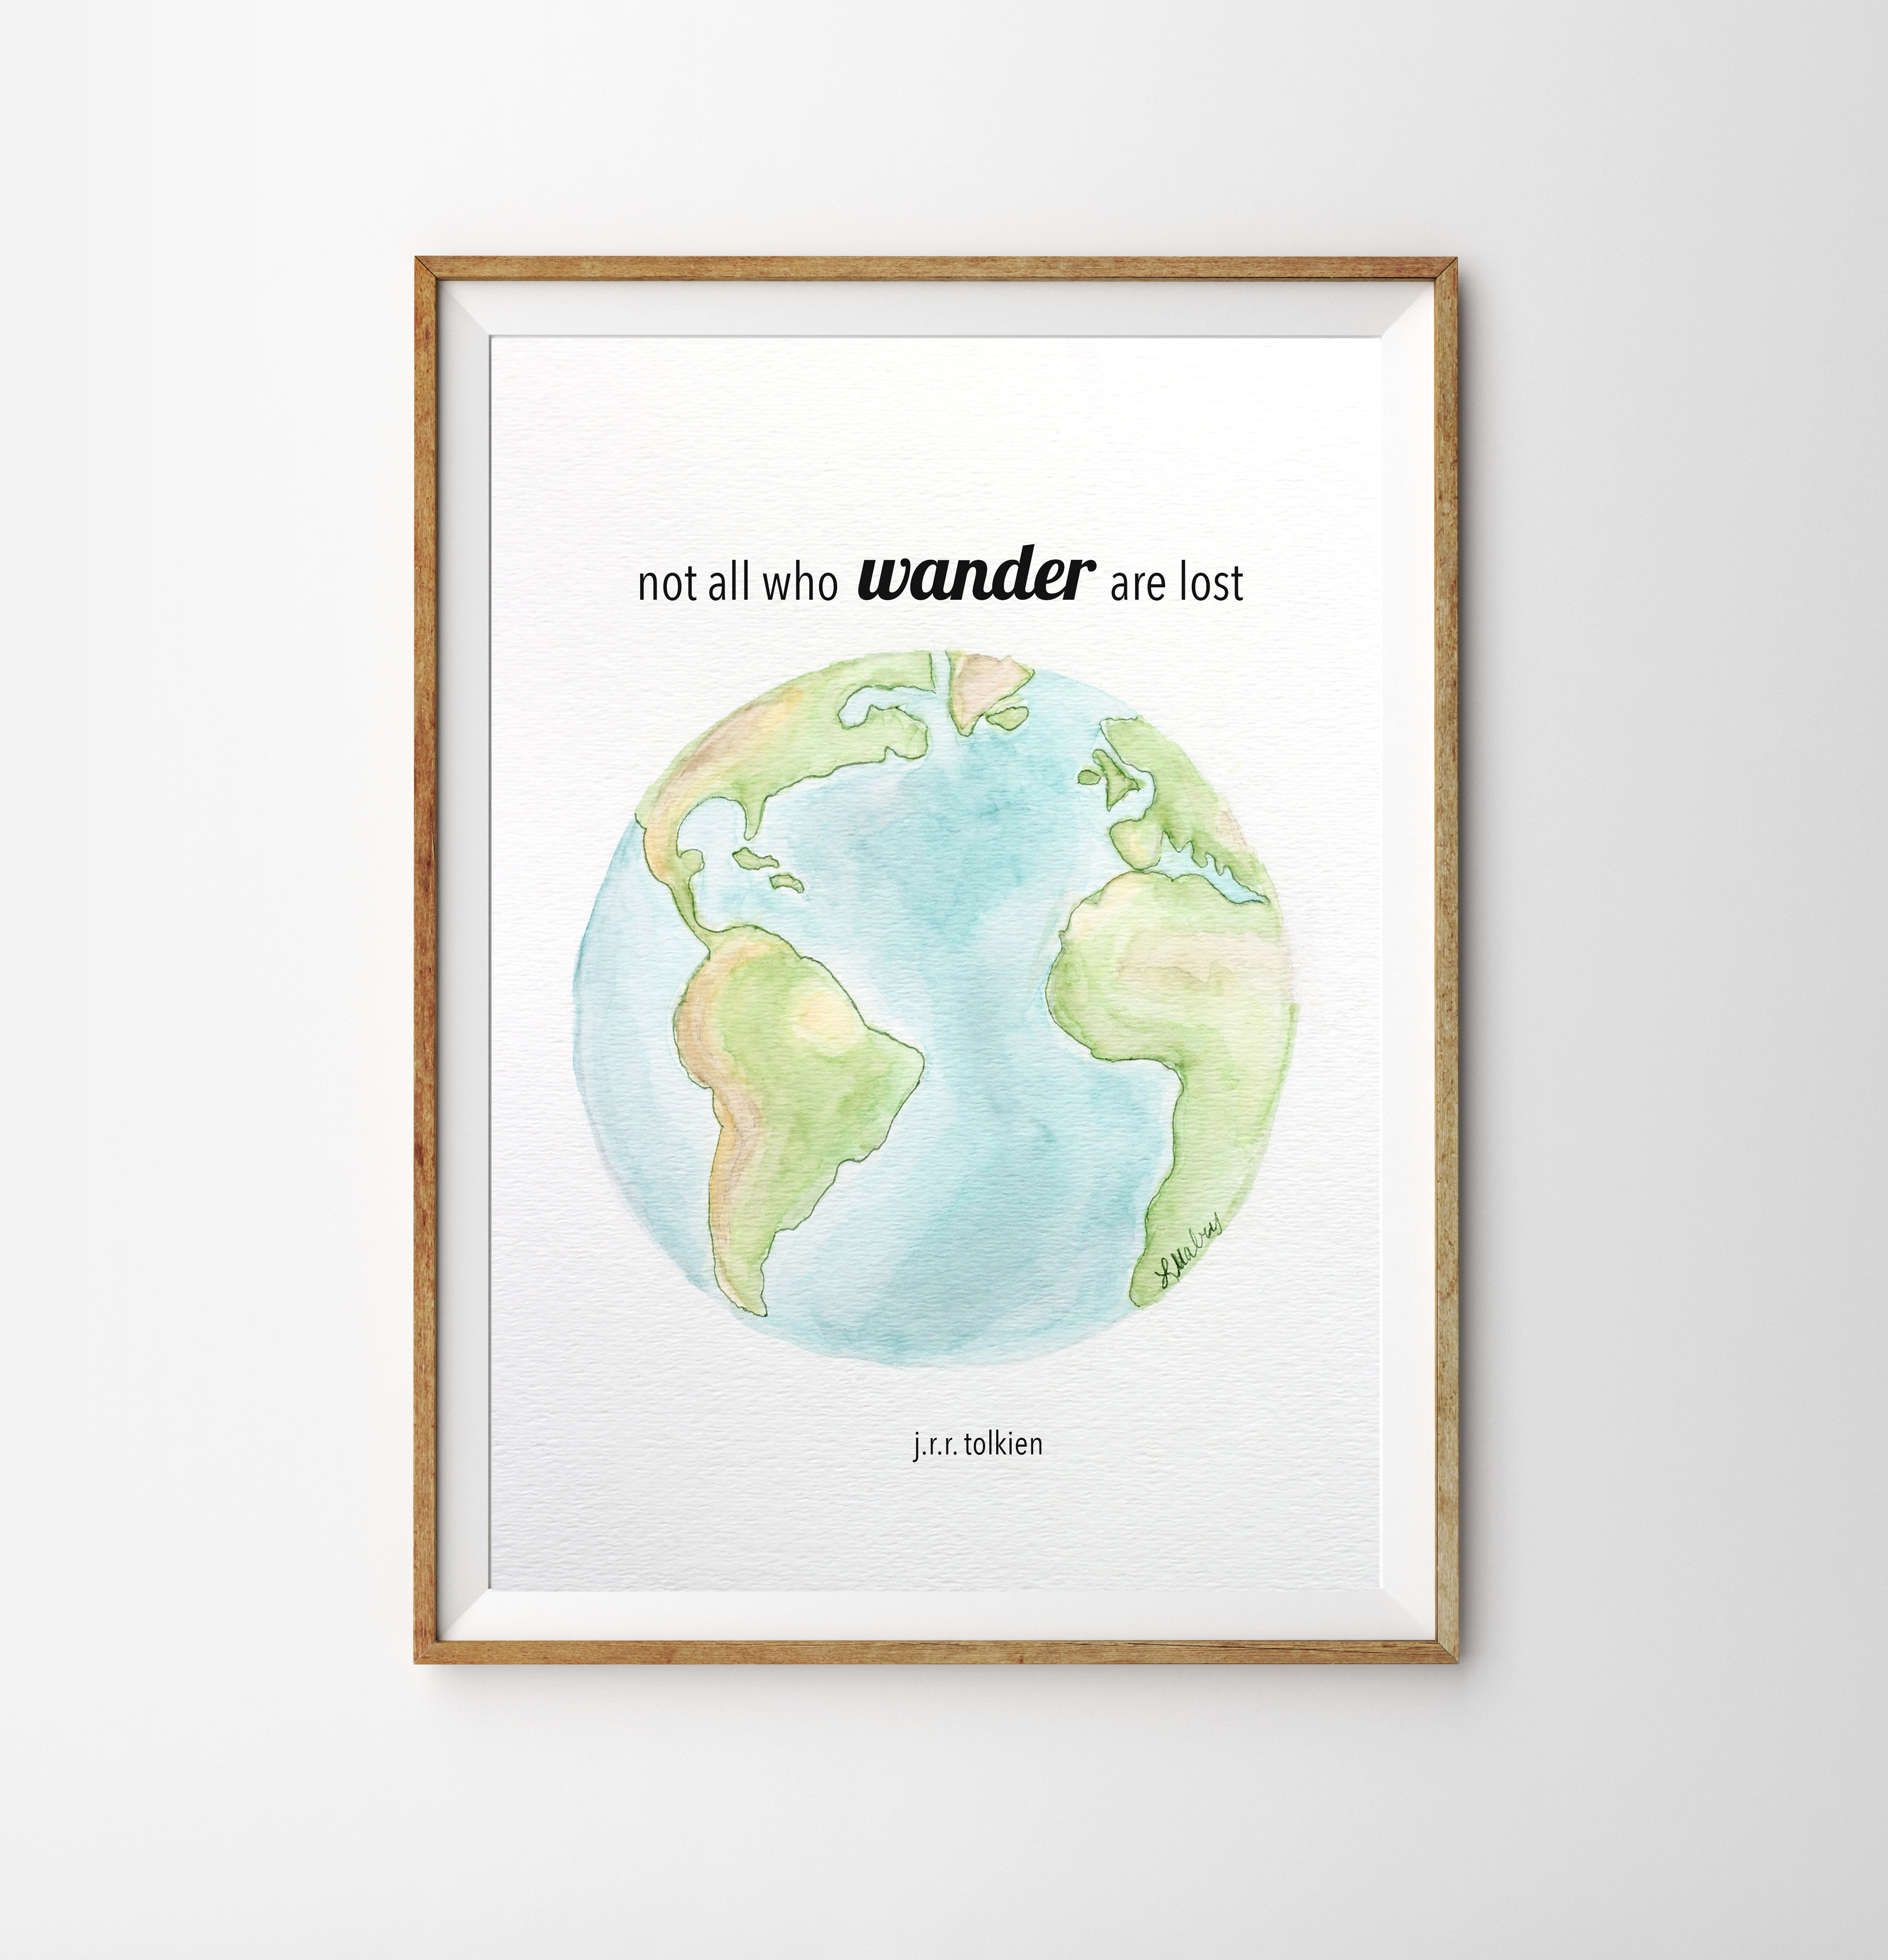 image relating to Watercolor Printable called Not All Who Stroll Watercolor Printable